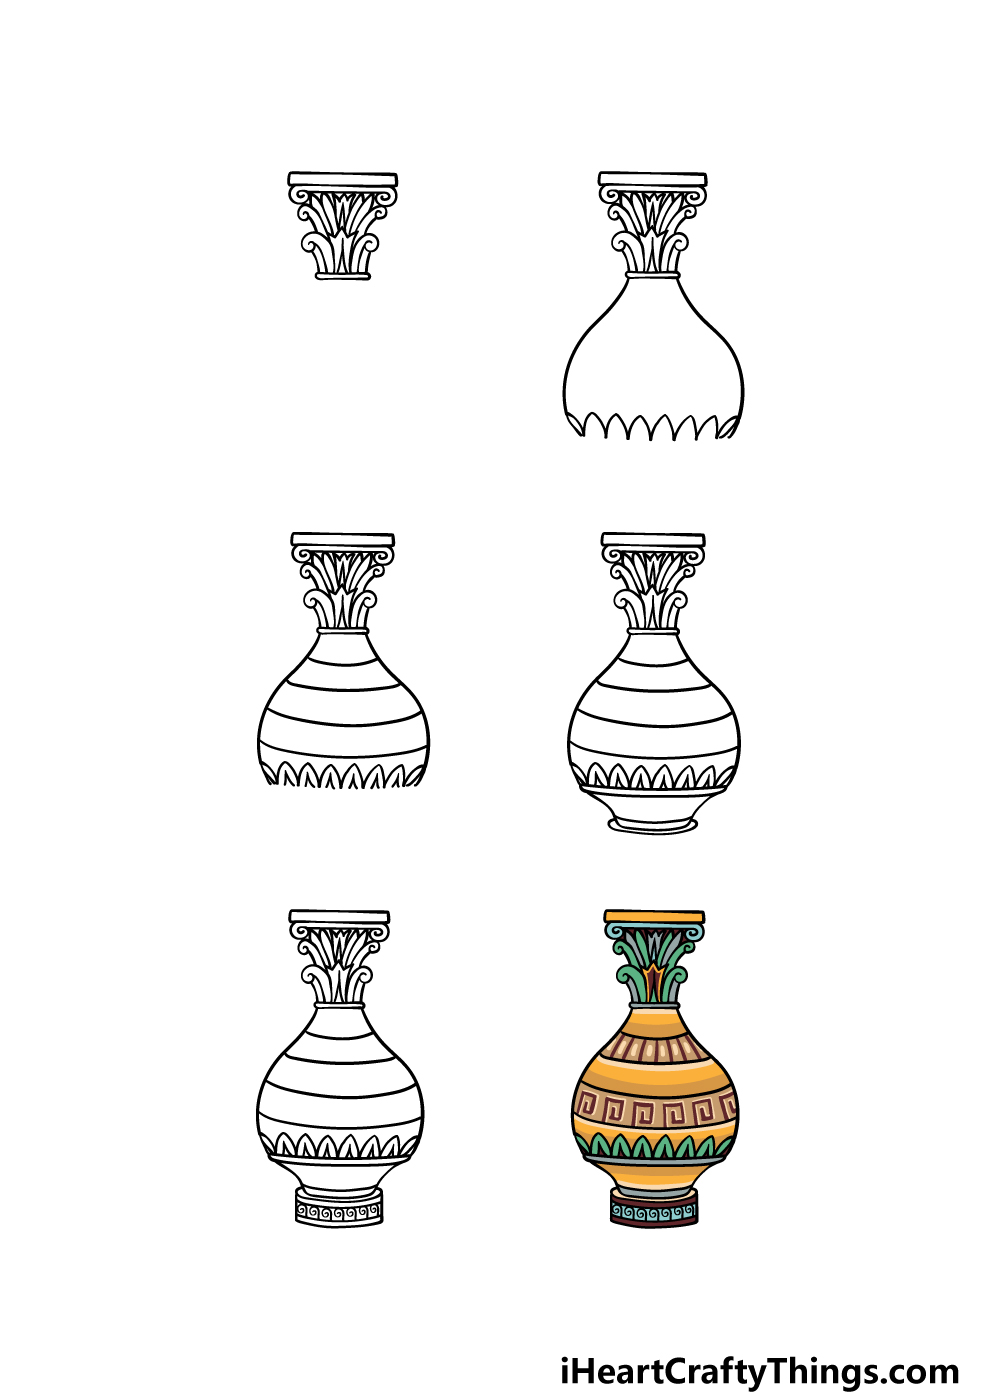 how to draw a vase in 6 steps